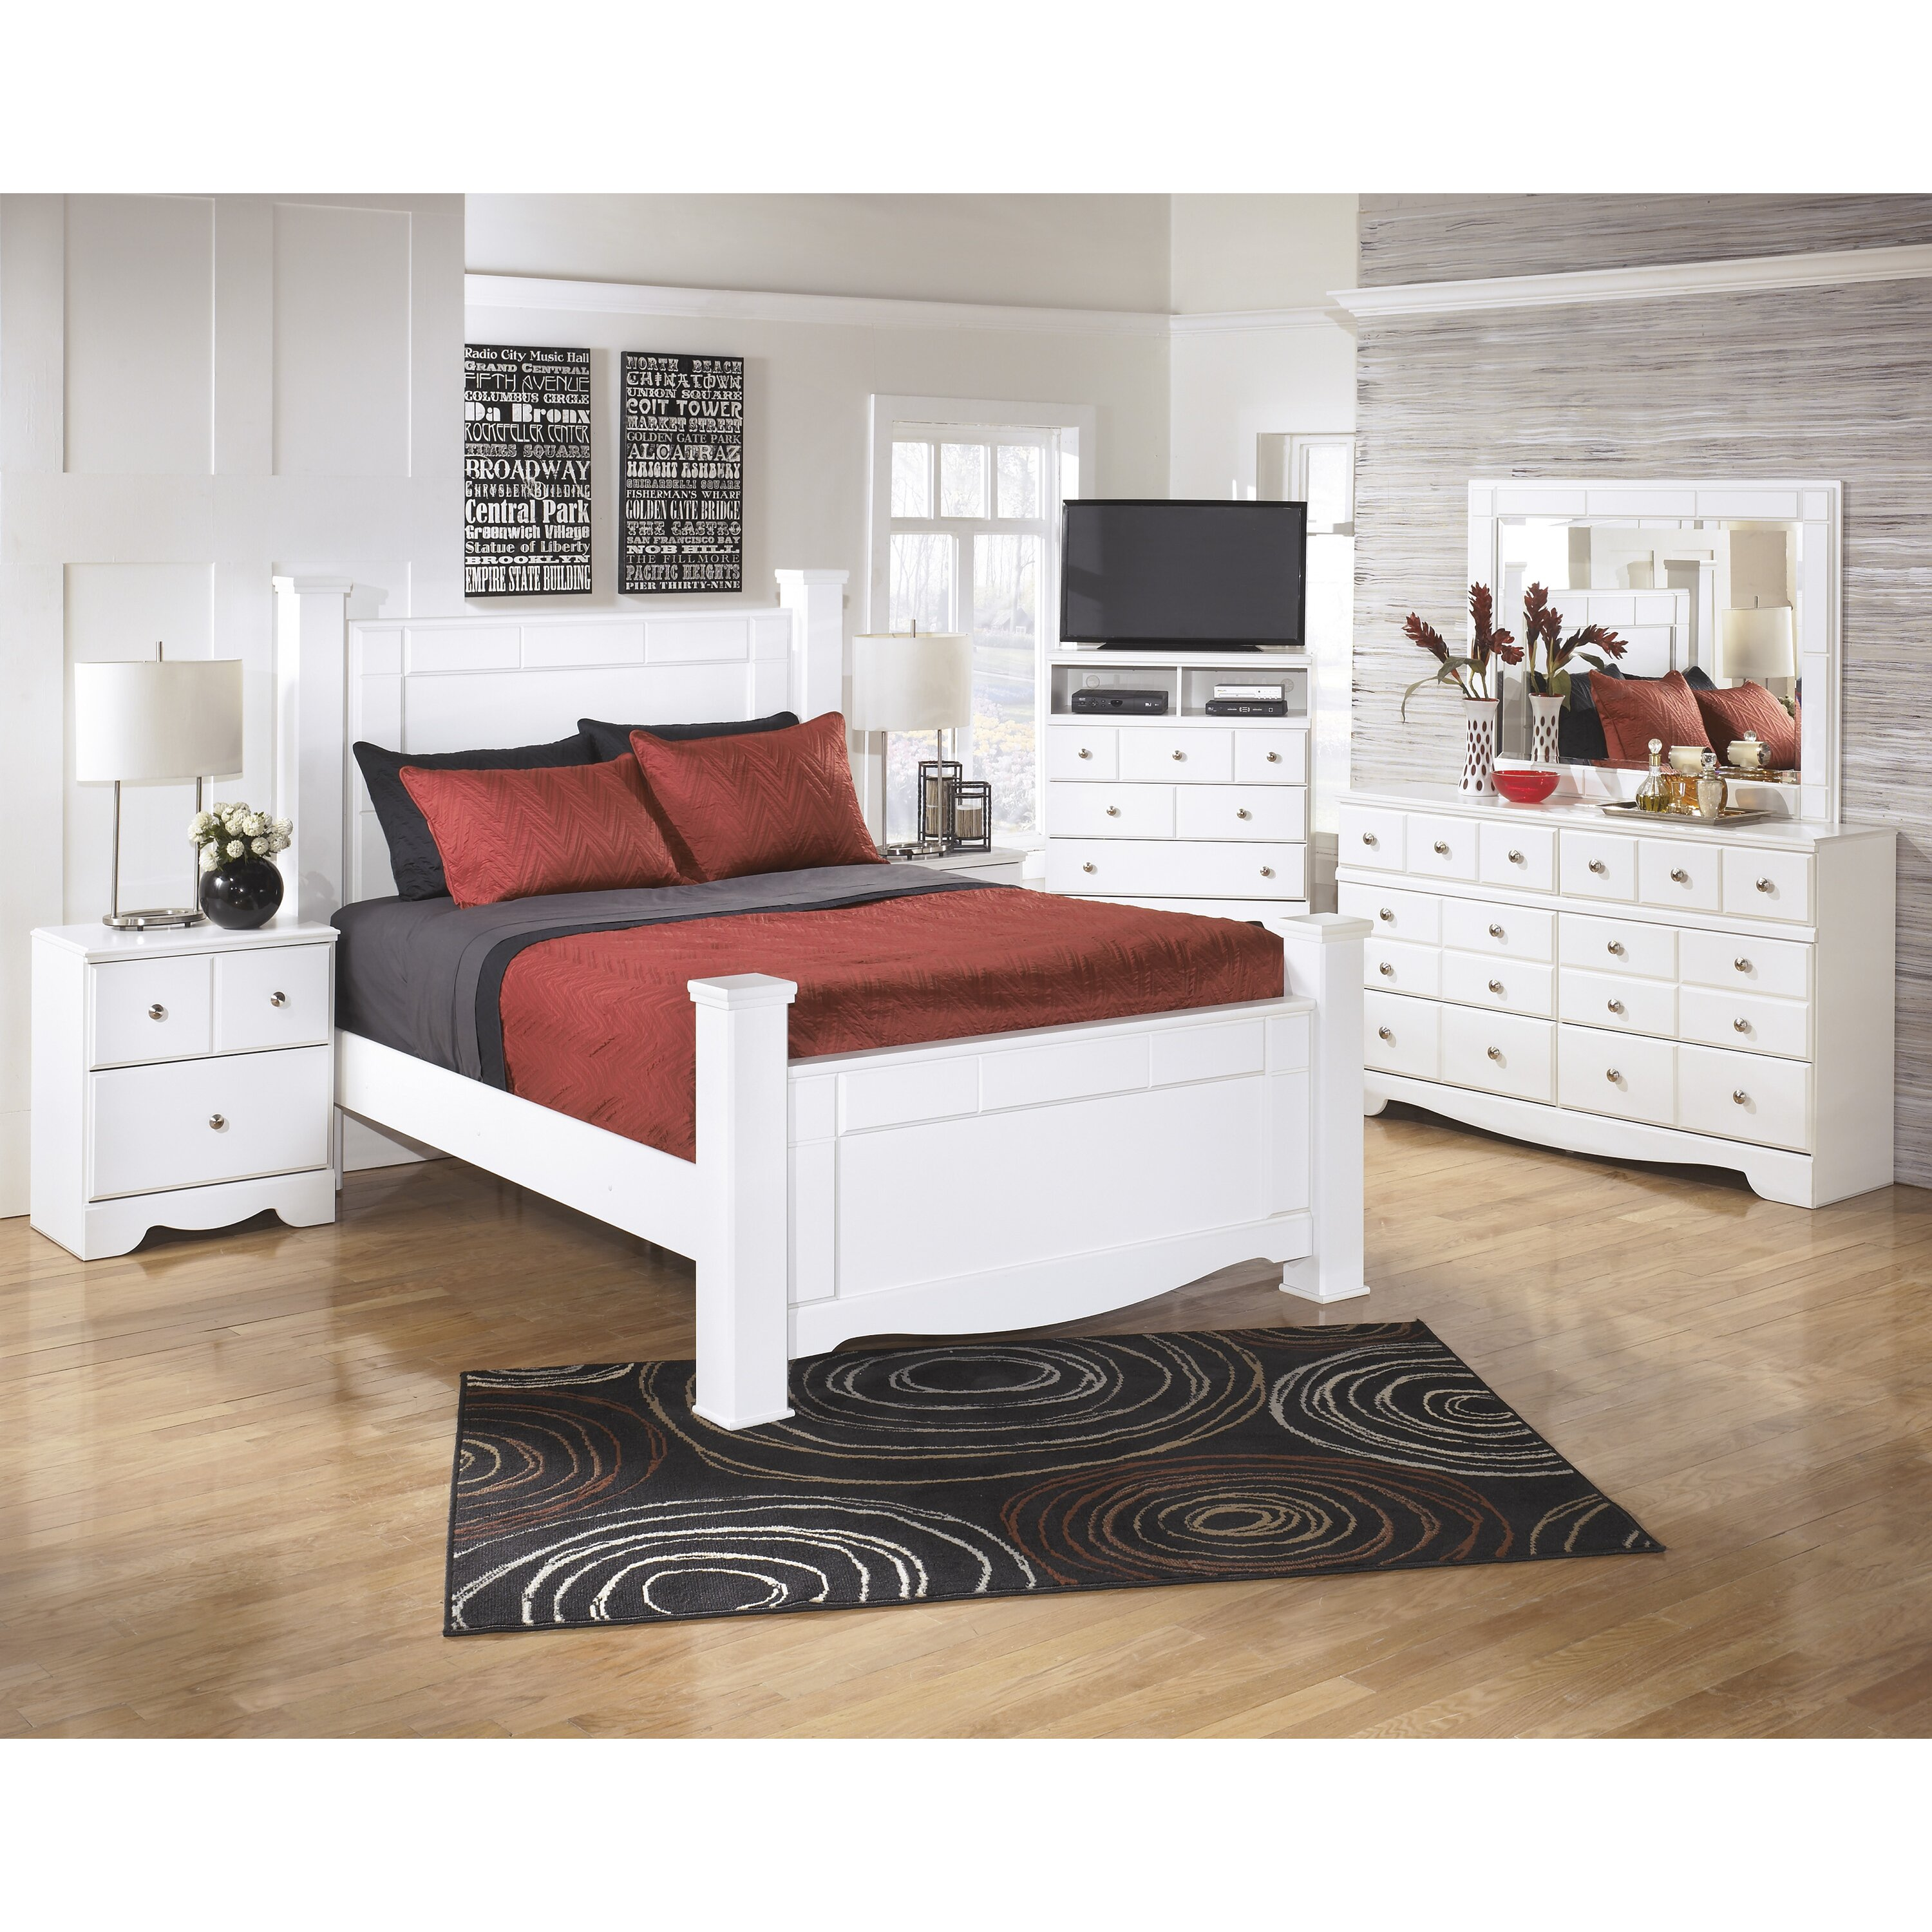 Patio Furniture For Sale In Fayetteville Nc: Beachcrest Home Weeki 6 Drawer Dresser & Reviews